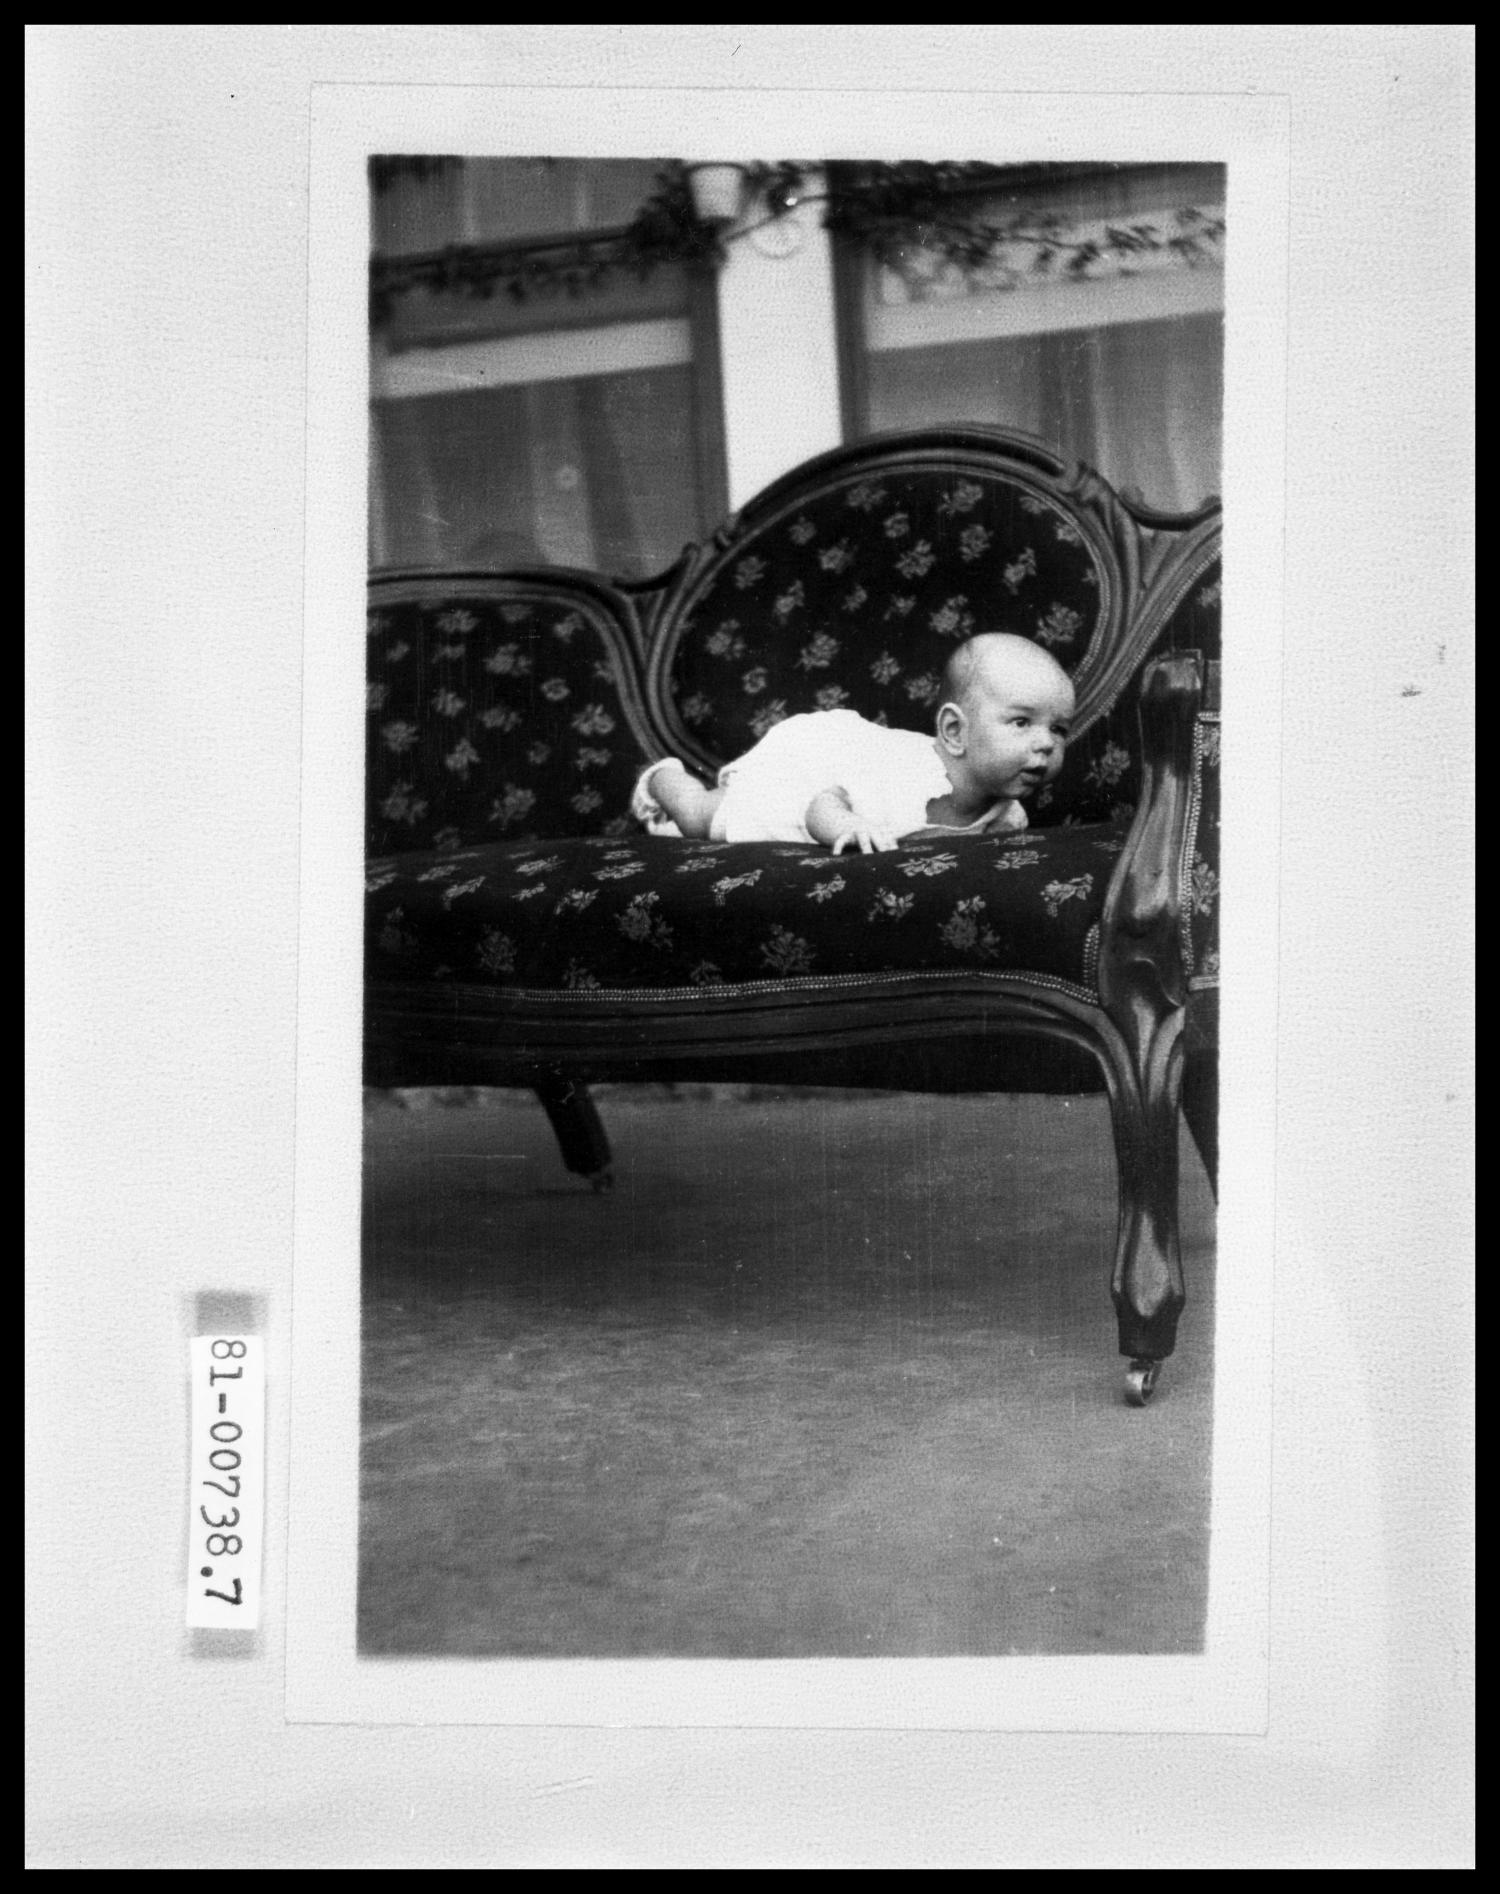 Baby On Couch                                                                                                      [Sequence #]: 1 of 1